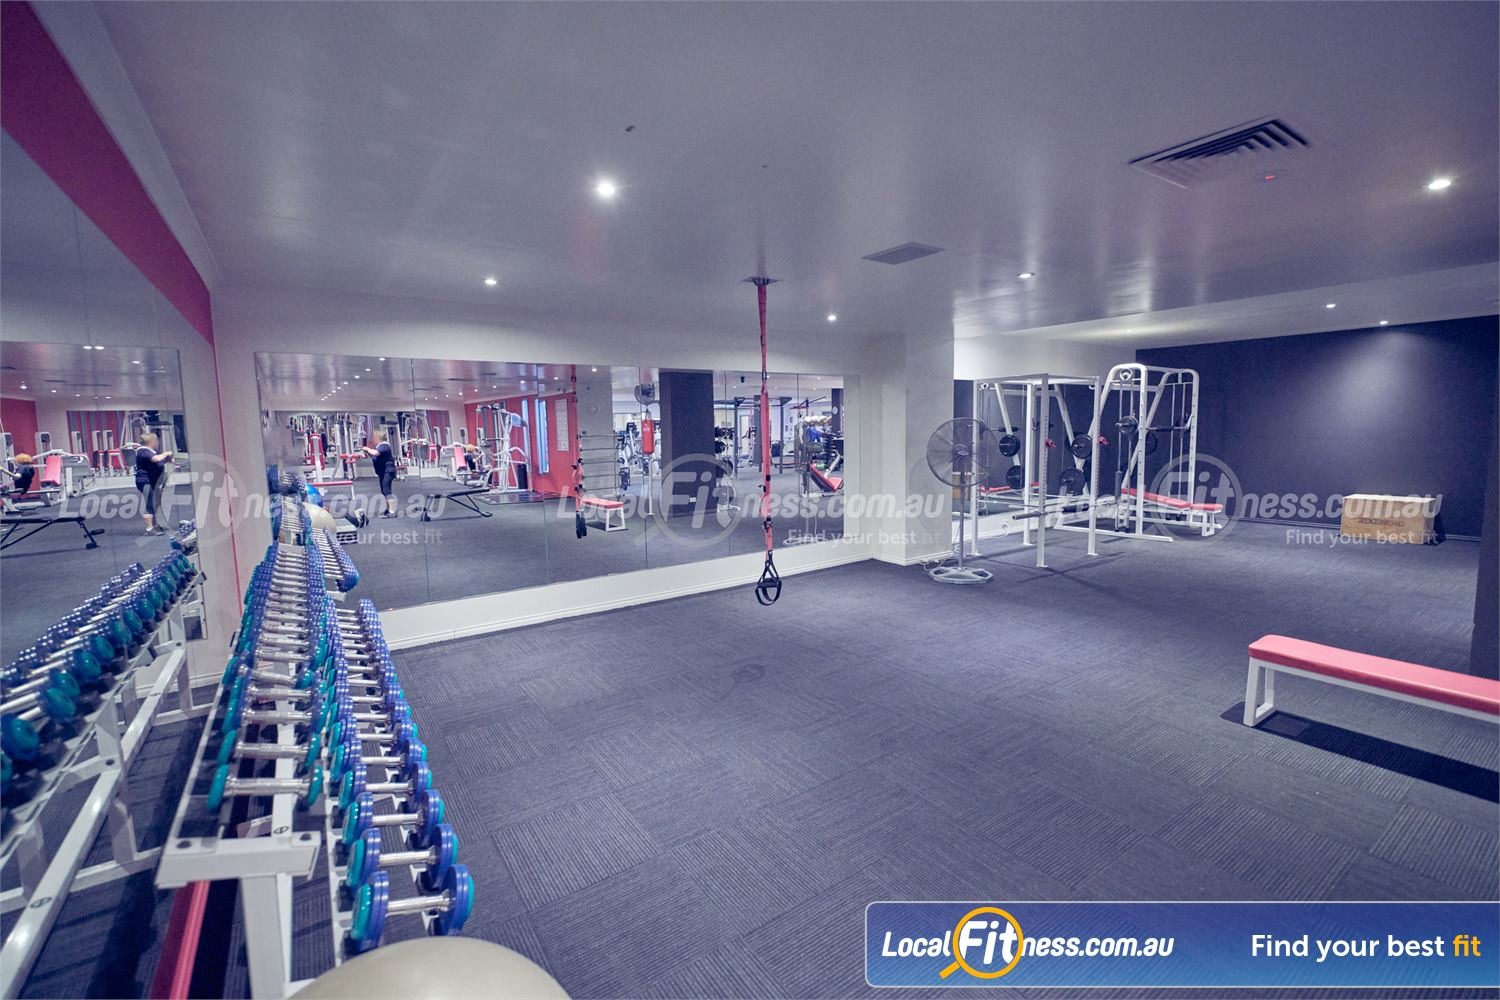 Fernwood Fitness Near Templestowe Lower Our free-weights area is open around the clock with 24/7 Bulleen gym access.